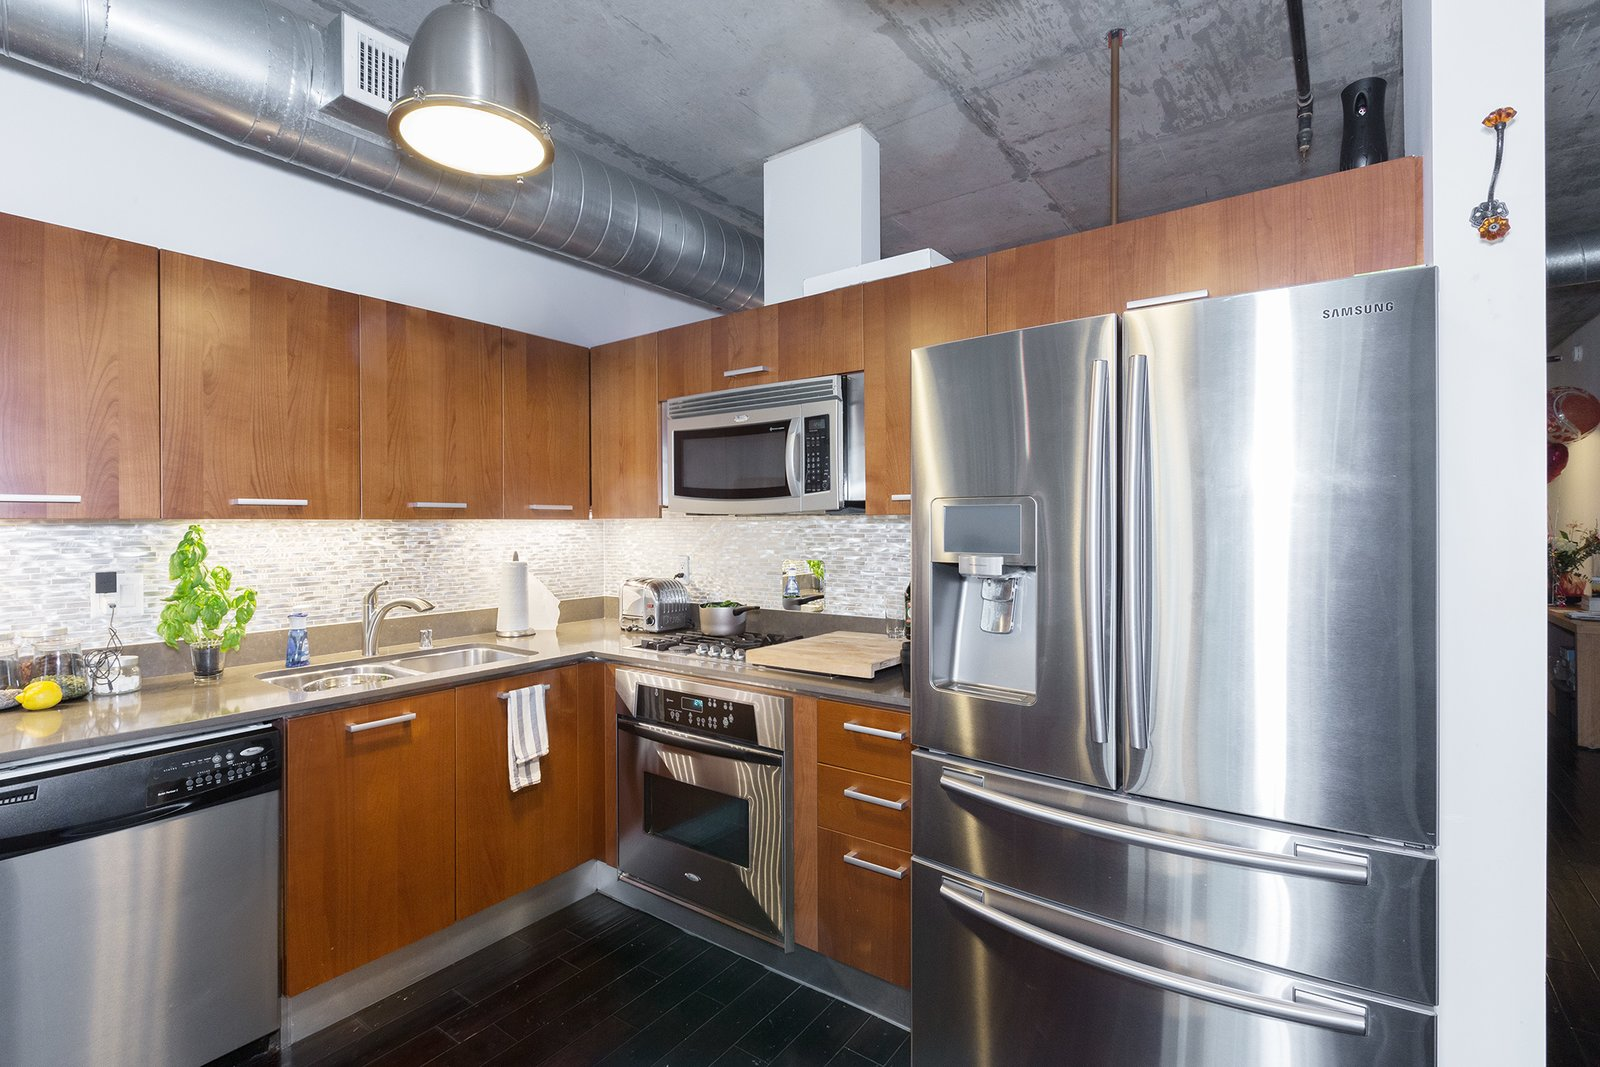 Photo 7 of 10 in Ultimate Urban Loft for Sale